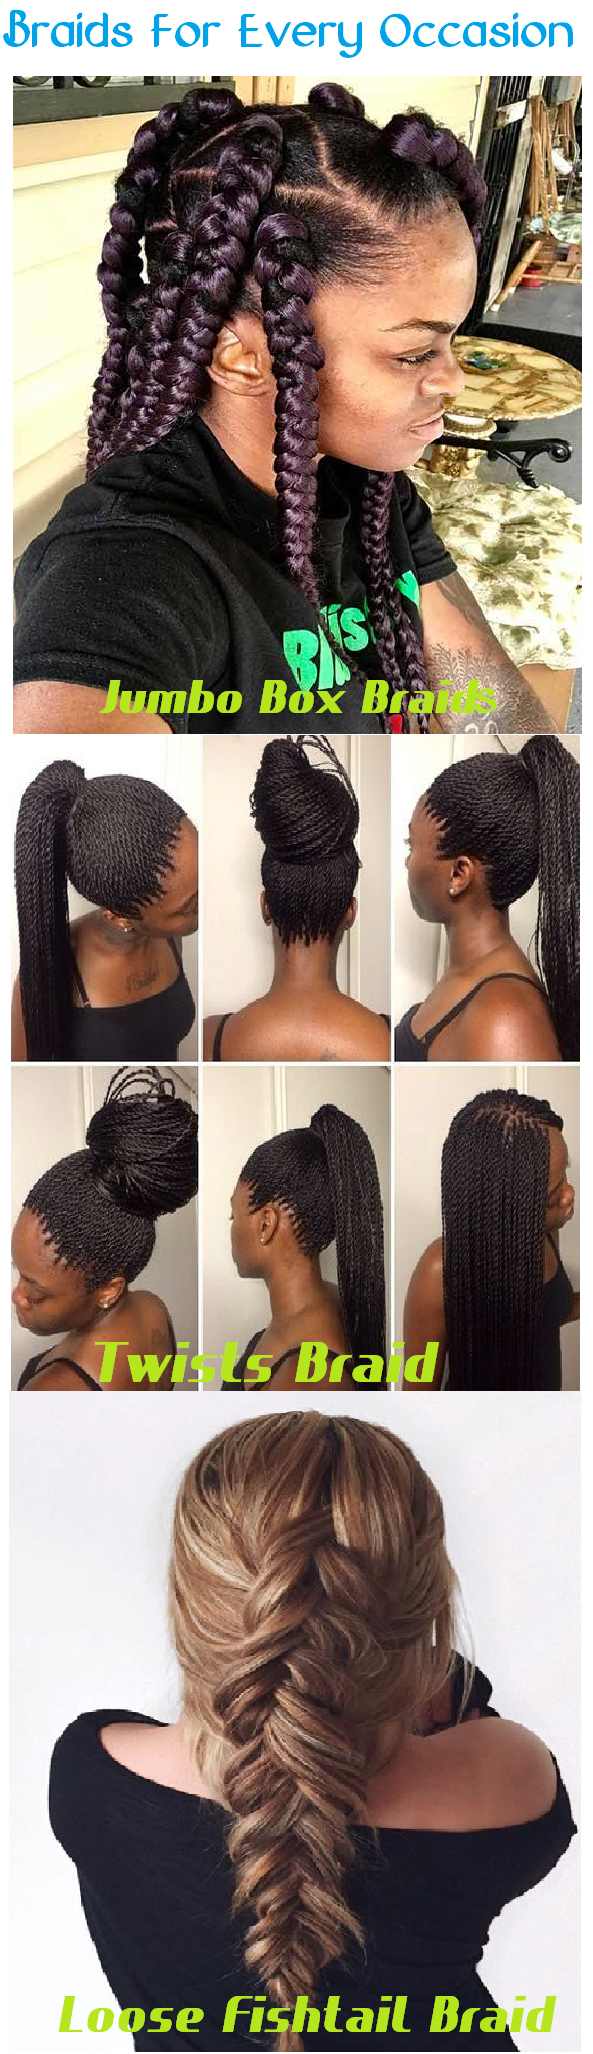 braids for all occasions